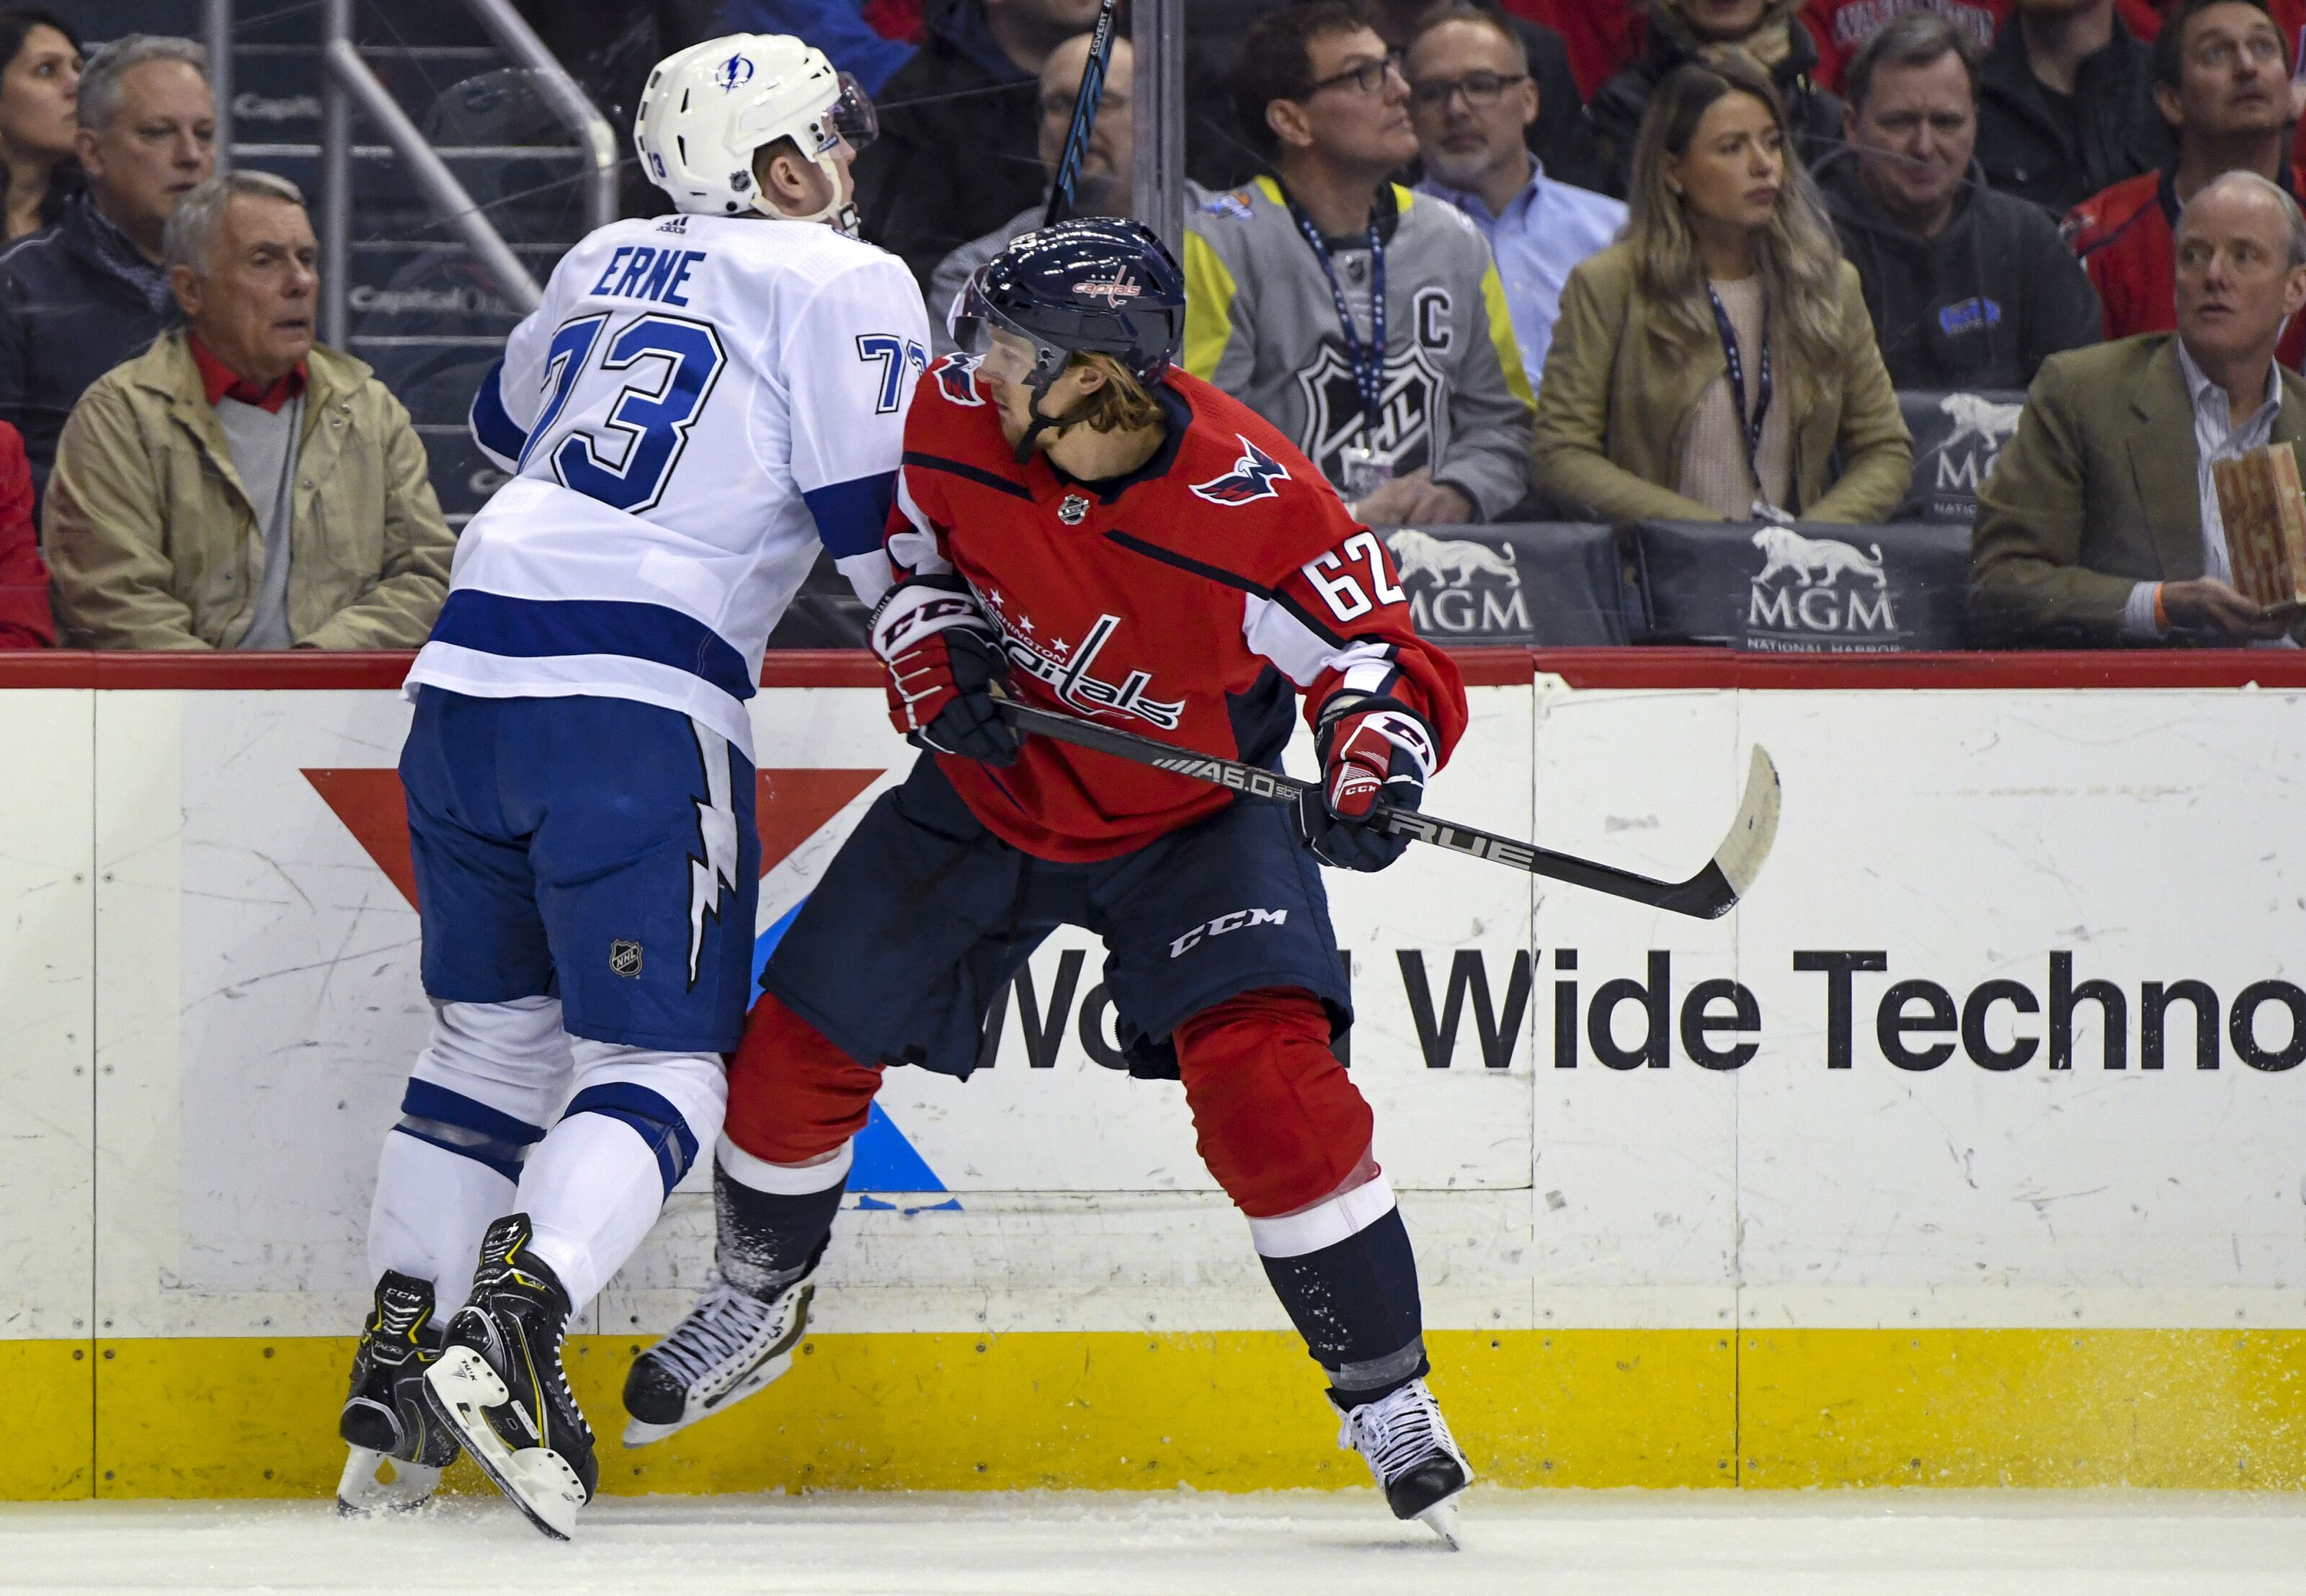 b5d5596ed89 Washington Capitals and Tampa Bay Lightning Rivalry is Great for the Game